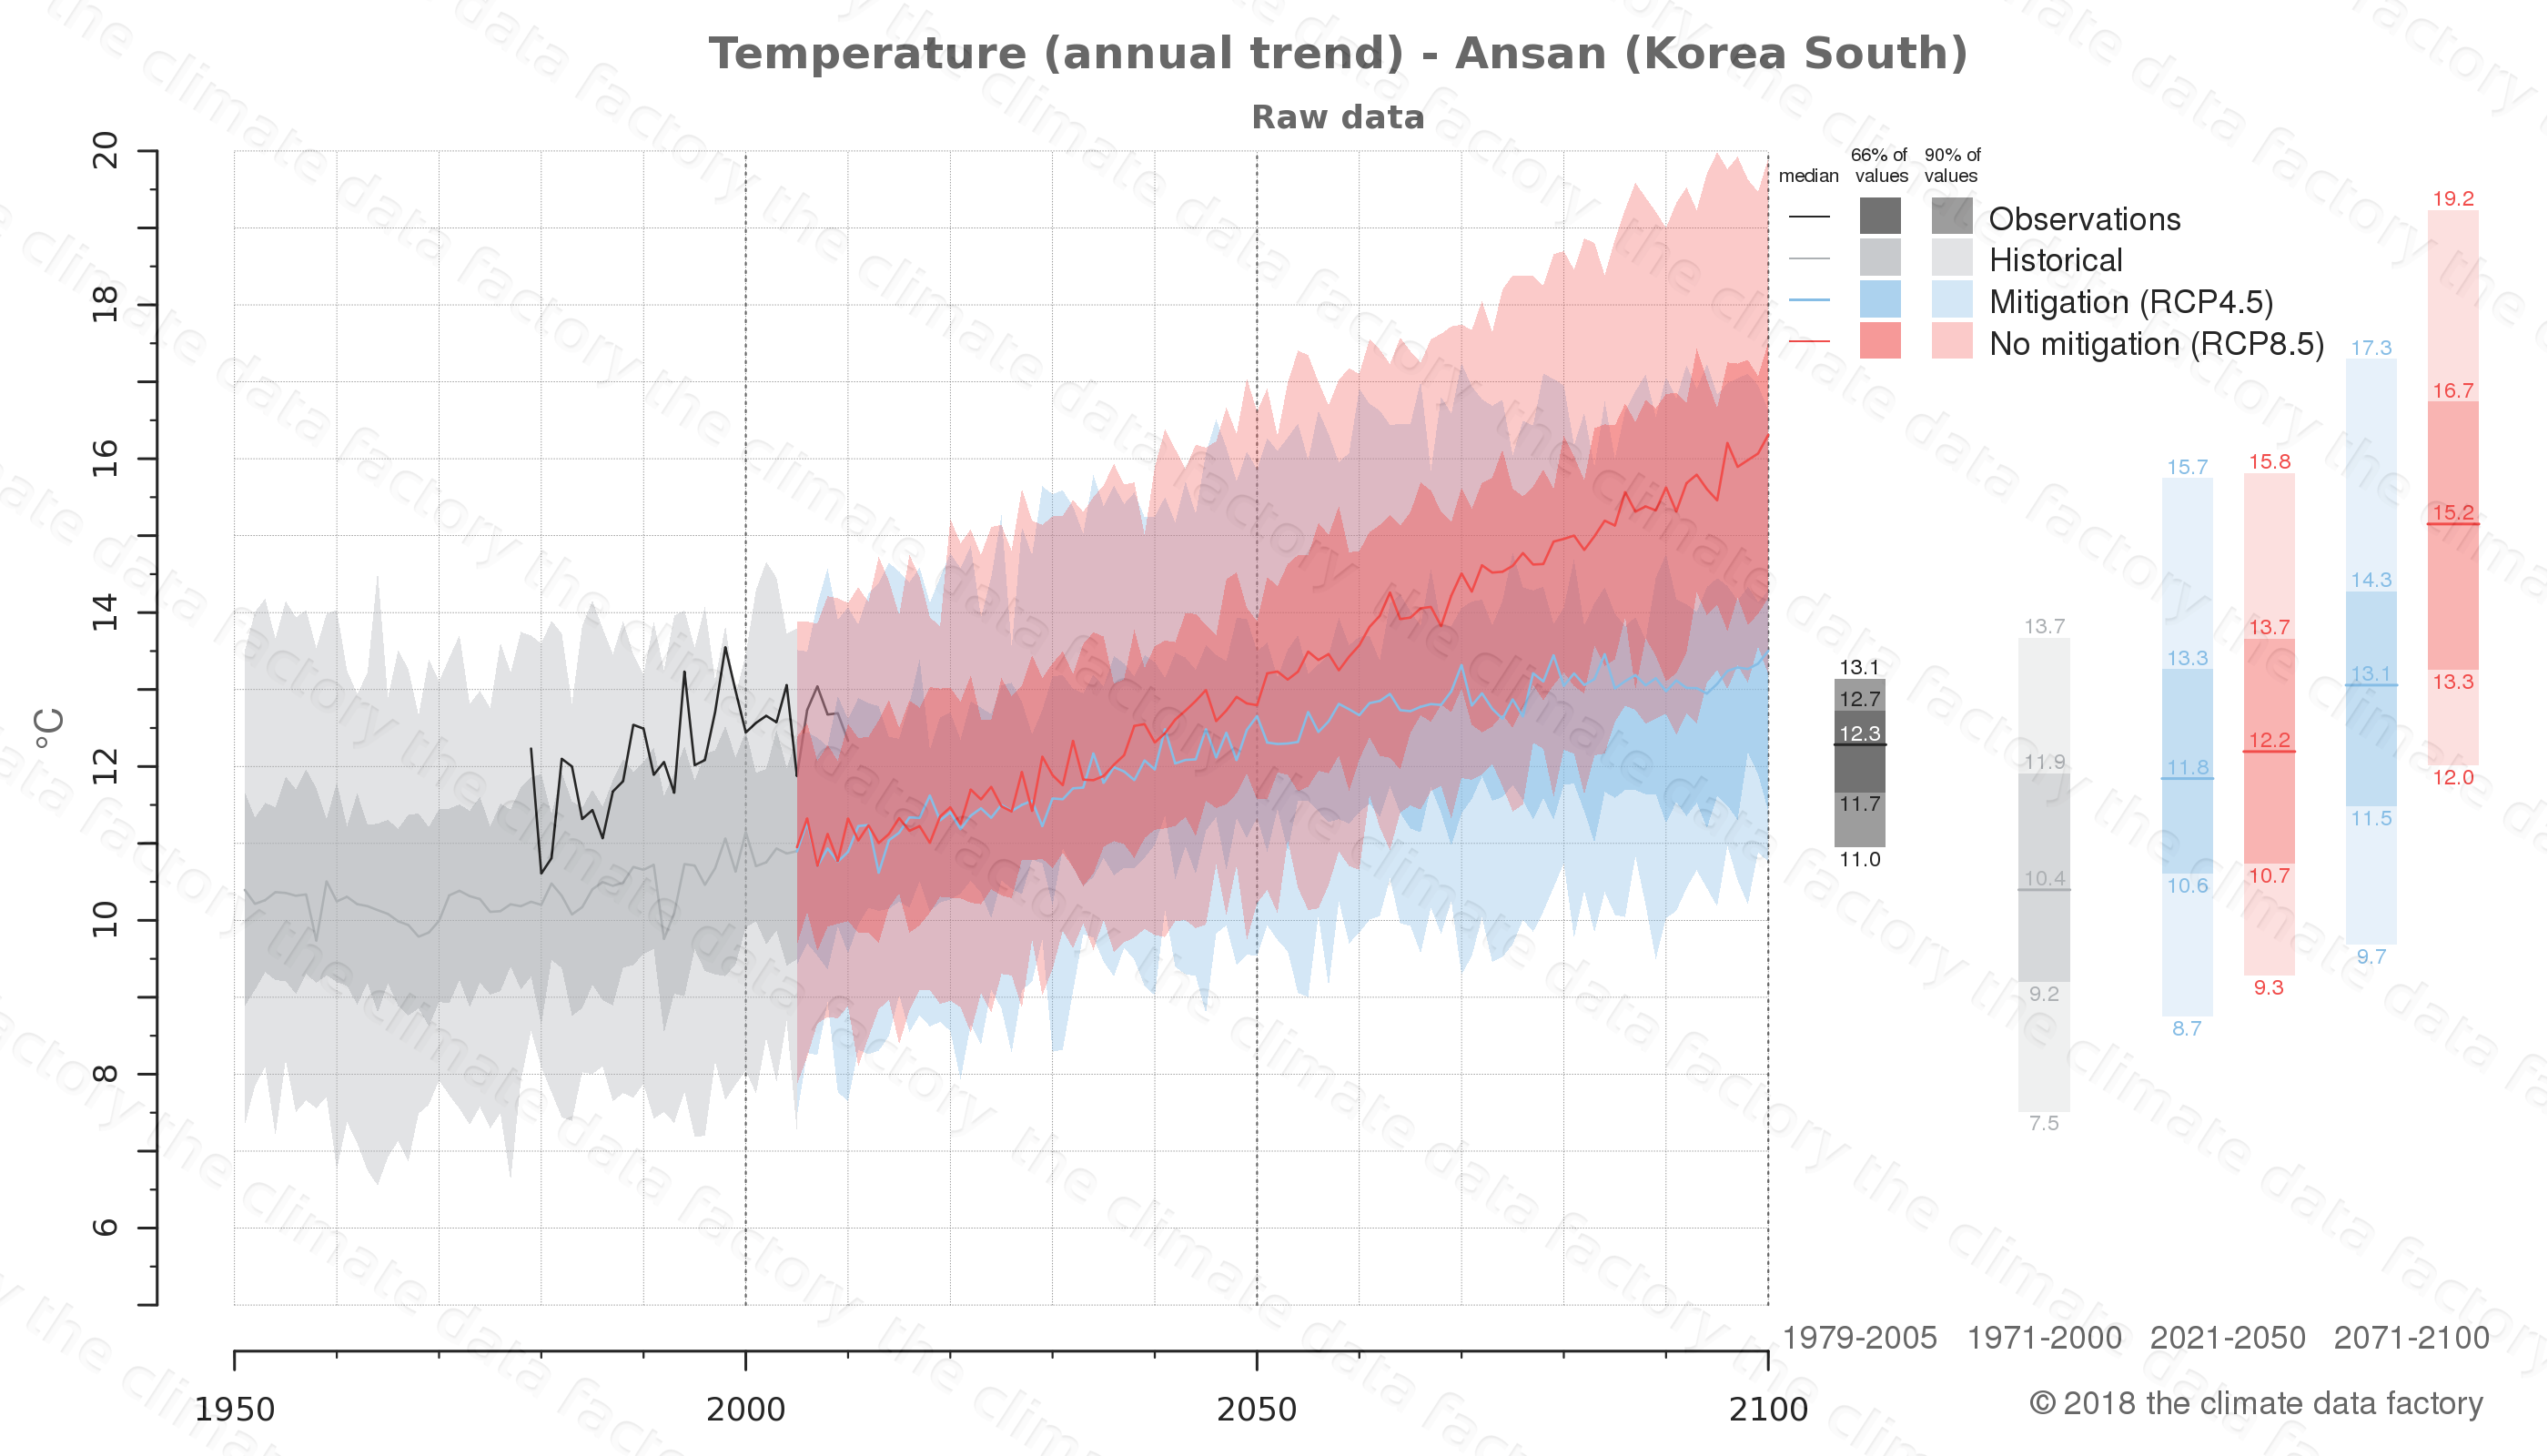 climate change data policy adaptation climate graph city data temperature ansan south korea